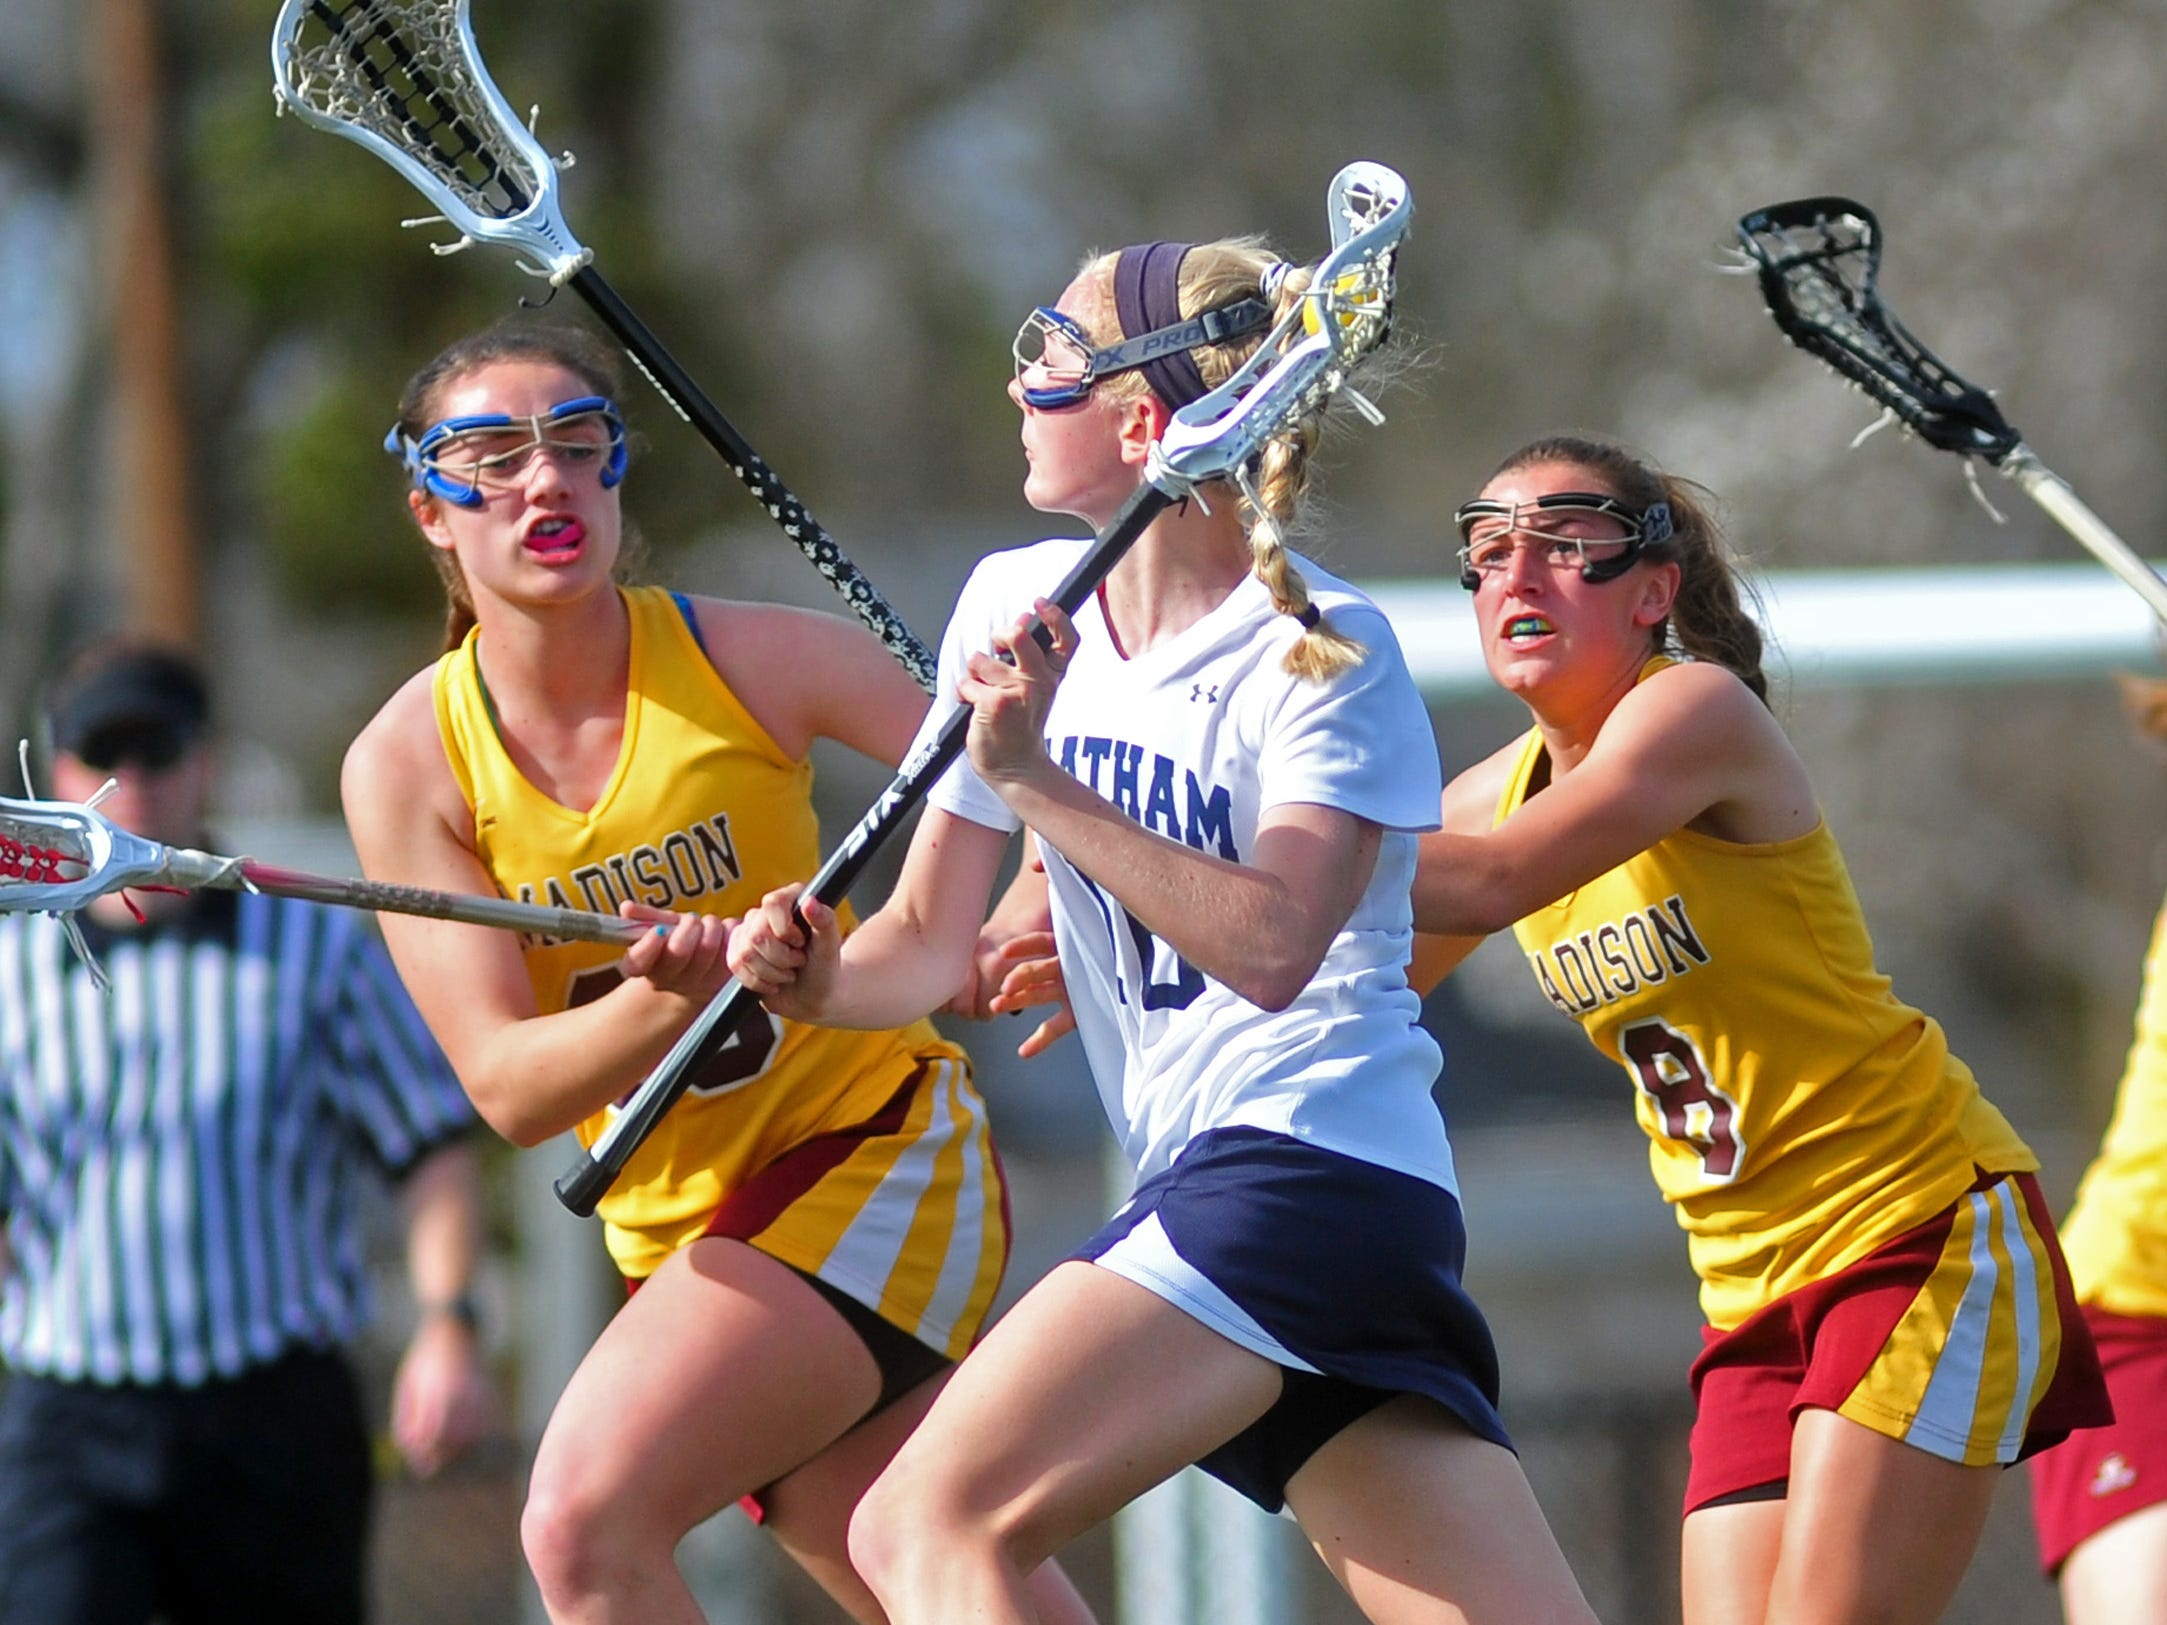 Madison's Catherine Crowley (left) and Molly Fisher flank Chatham's Bridget Ballard as she heads to the goal.